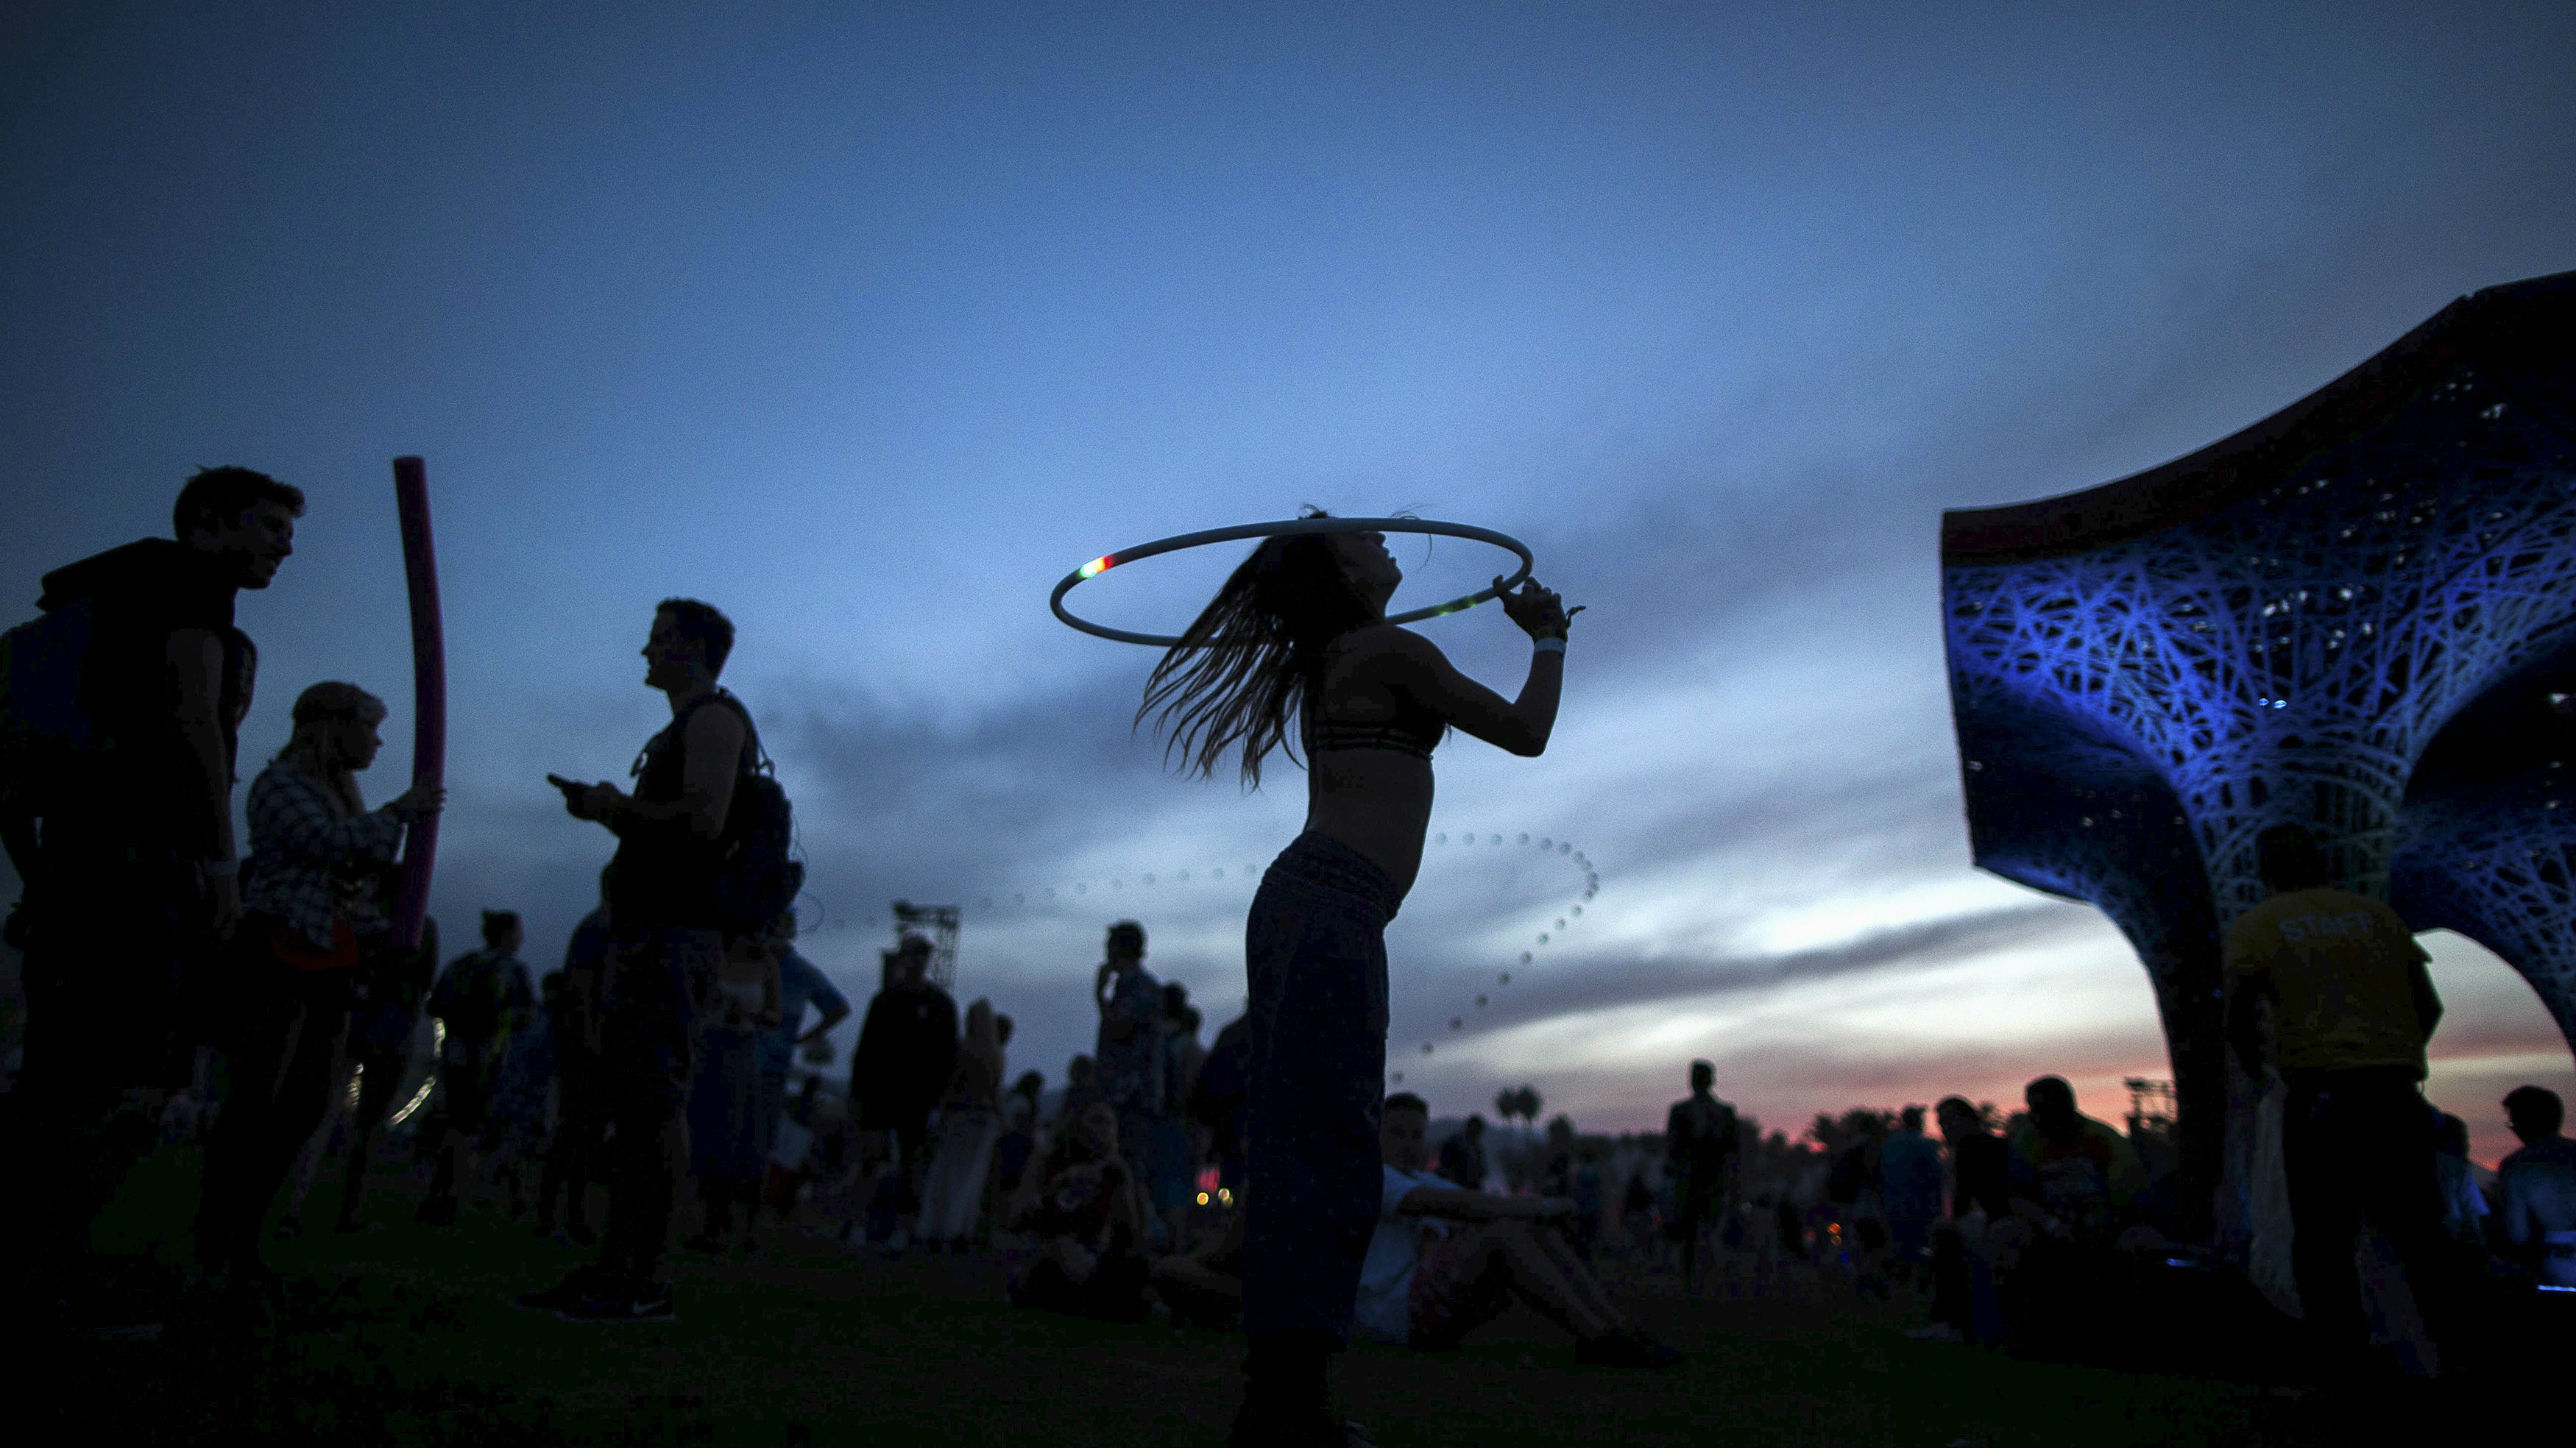 A woman dances with a hula hoop at the Coachella Valley Music and Arts Festival in Indio.